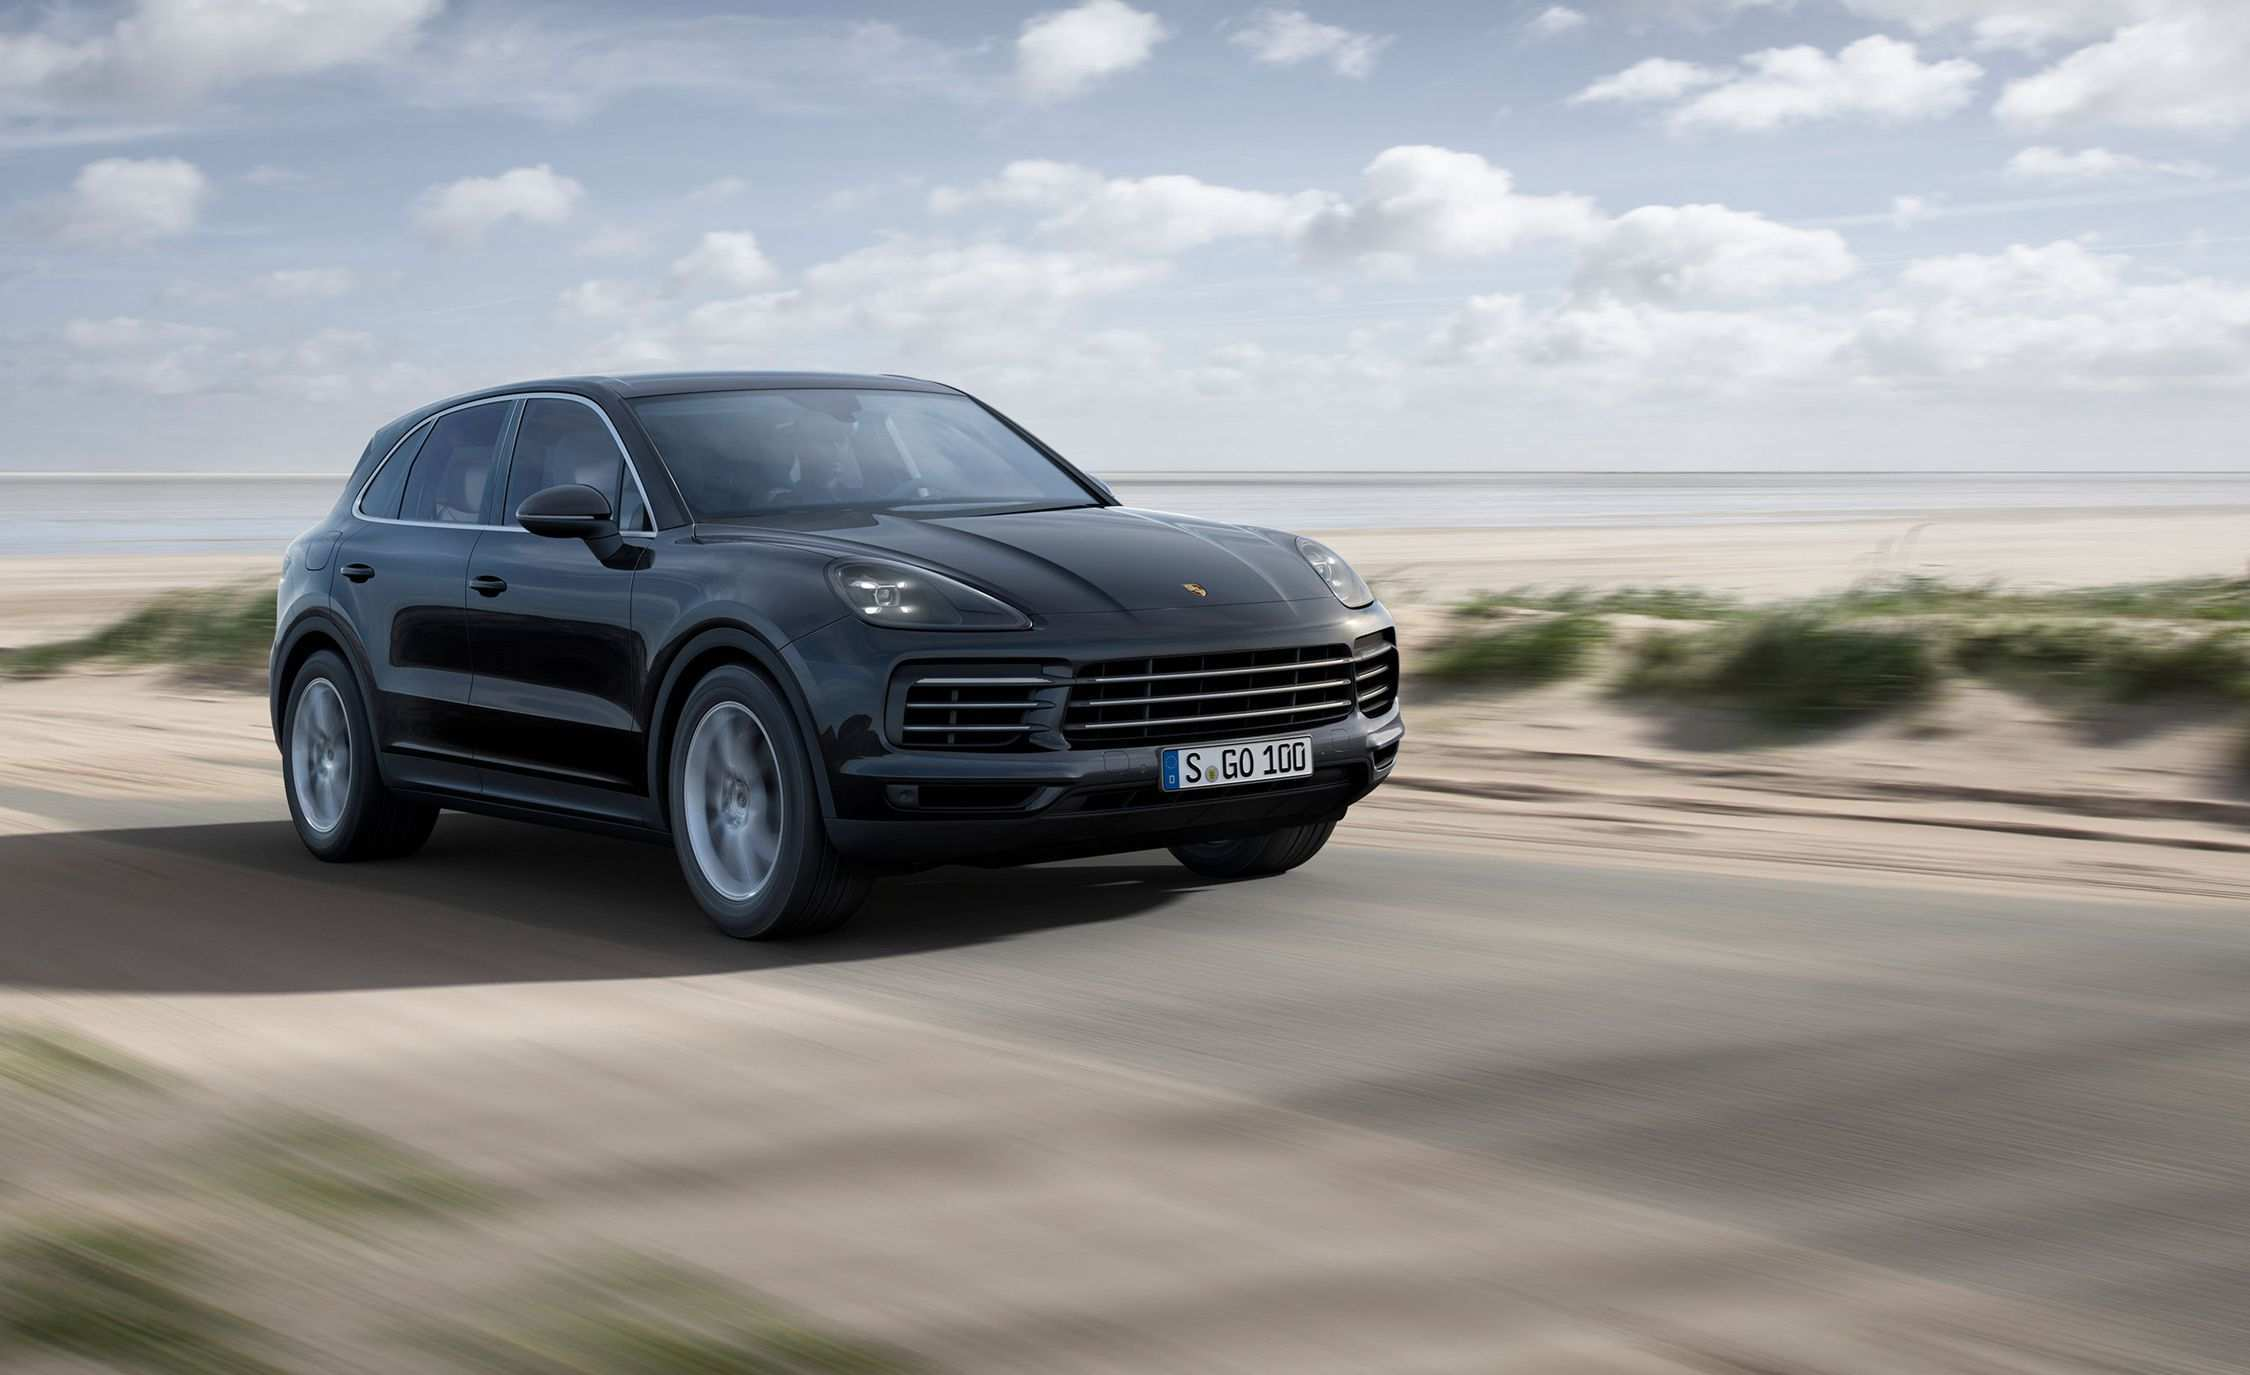 75 The Best 2019 Porsche Cayenne Model Exterior And Interior